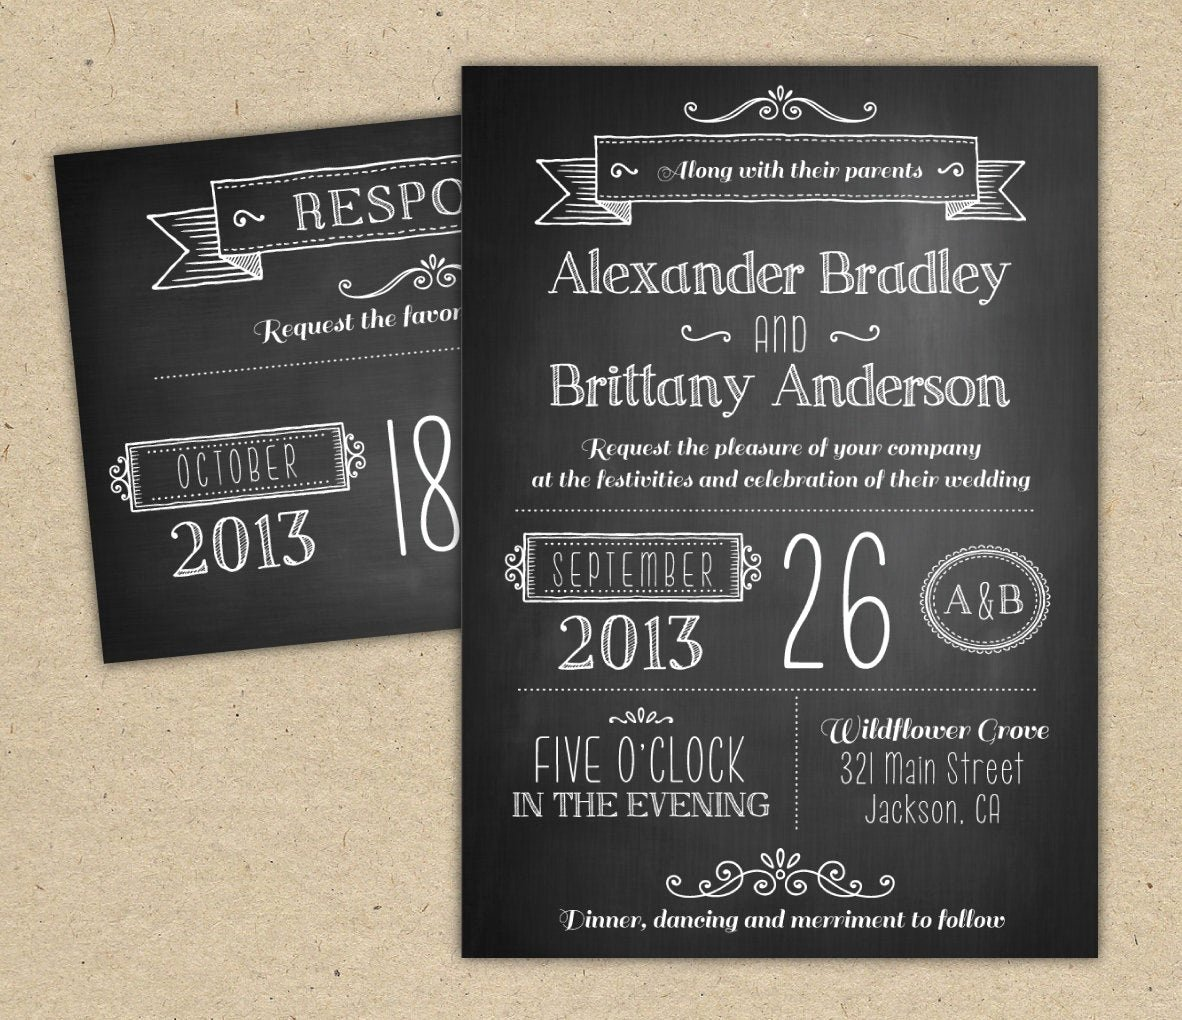 Chalkboard Invitation Template Free Inspirational Chalkboard Wedding Invitation Modern Invitation Template Diy